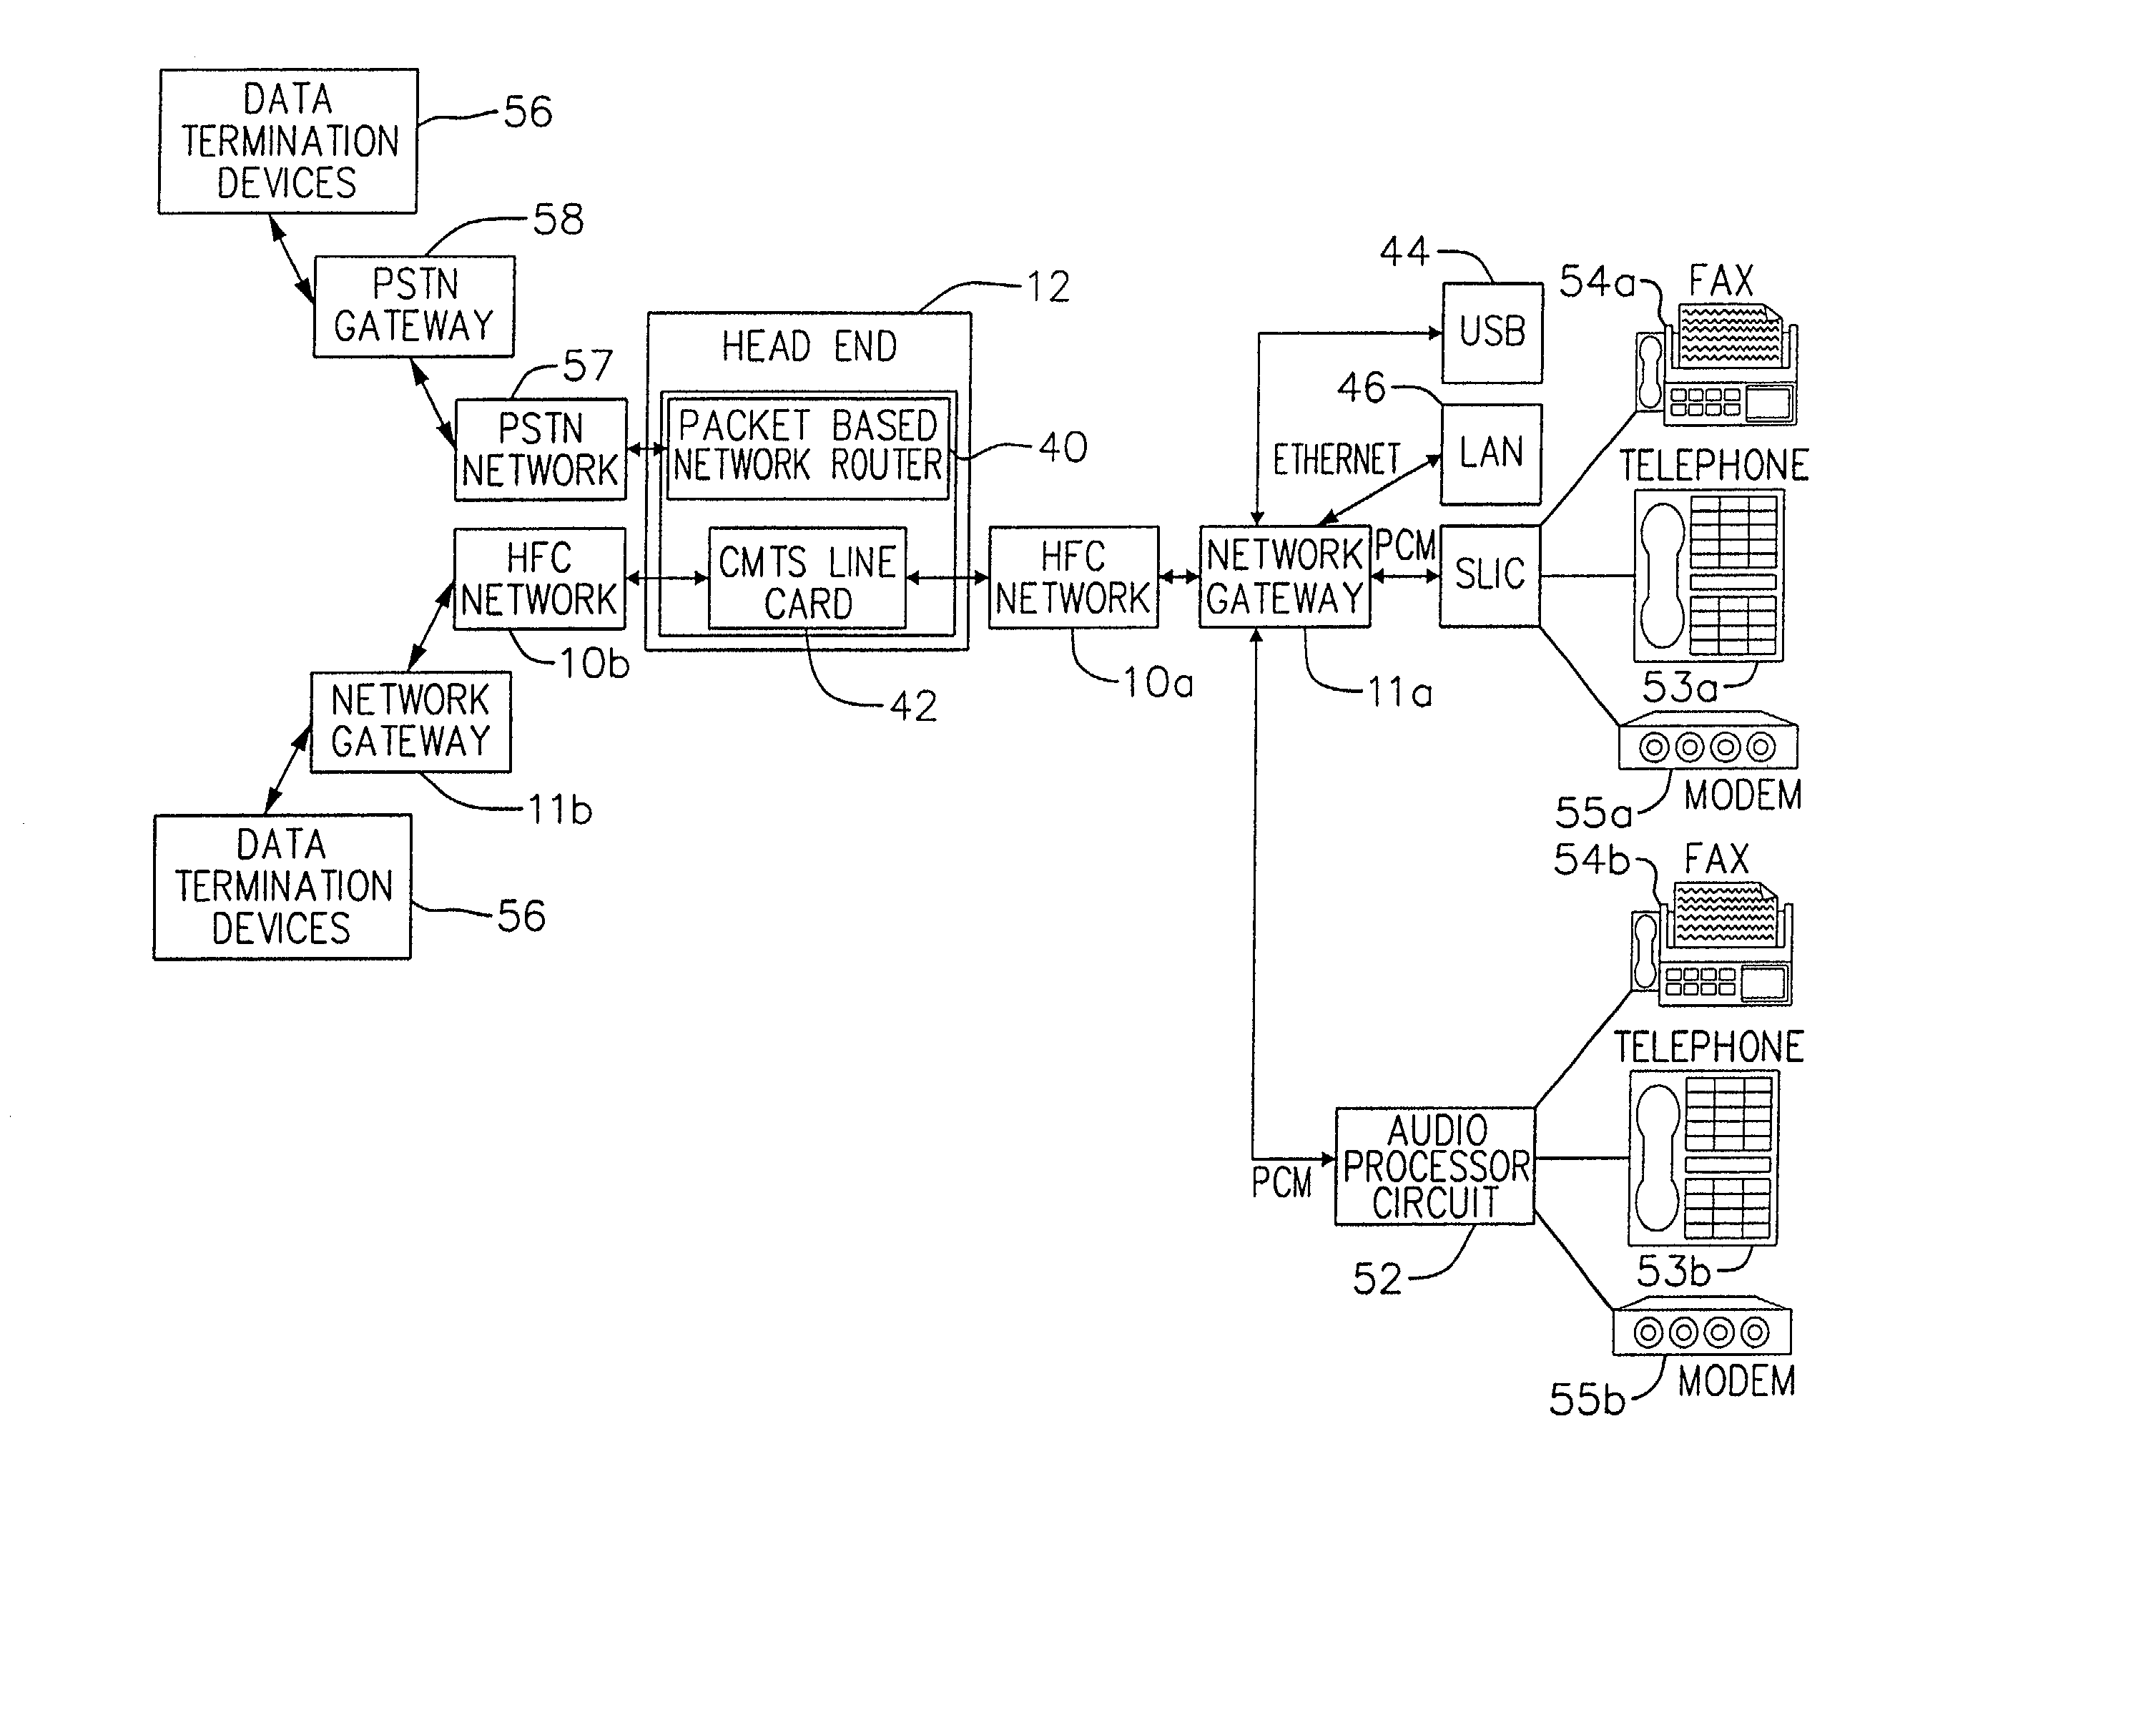 US20020061012A1 20020523 D00000 patent us20020061012 cable modem with voice processing,Wiring Diagram For Time Warner Cable Phone Inter